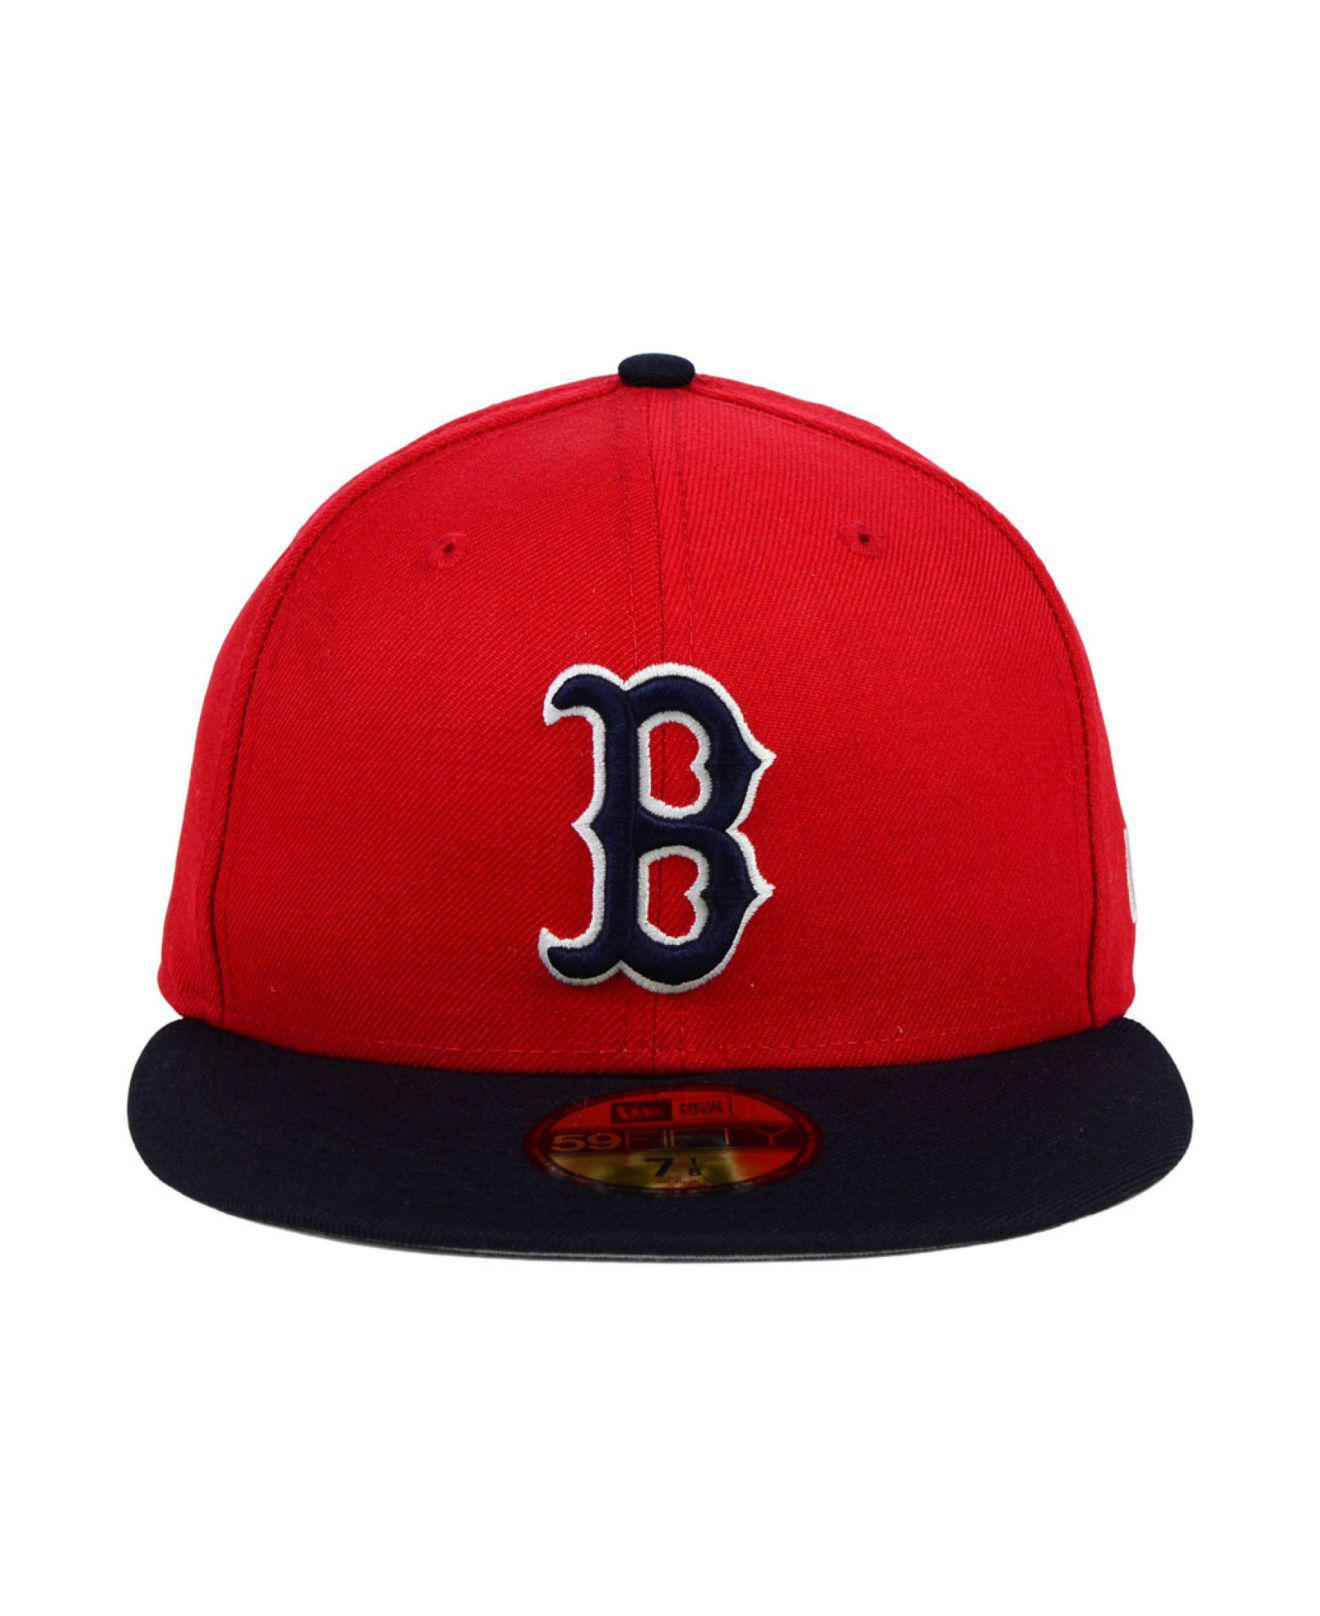 00c18031ad7b69 ... coupon code for lyst ktz boston red sox mlb cooperstown 59fifty cap in  red for men